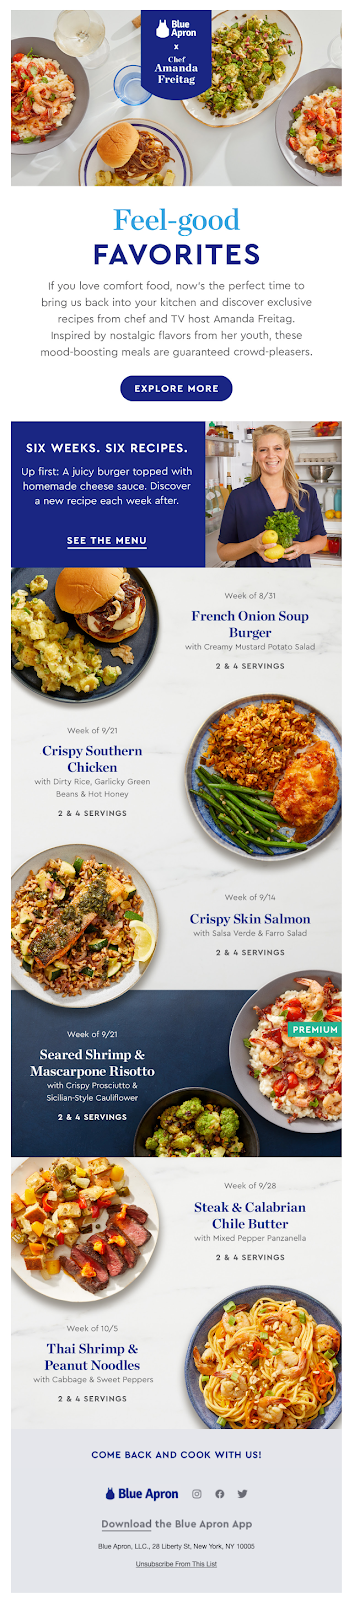 Email campaign example: Blue Apron